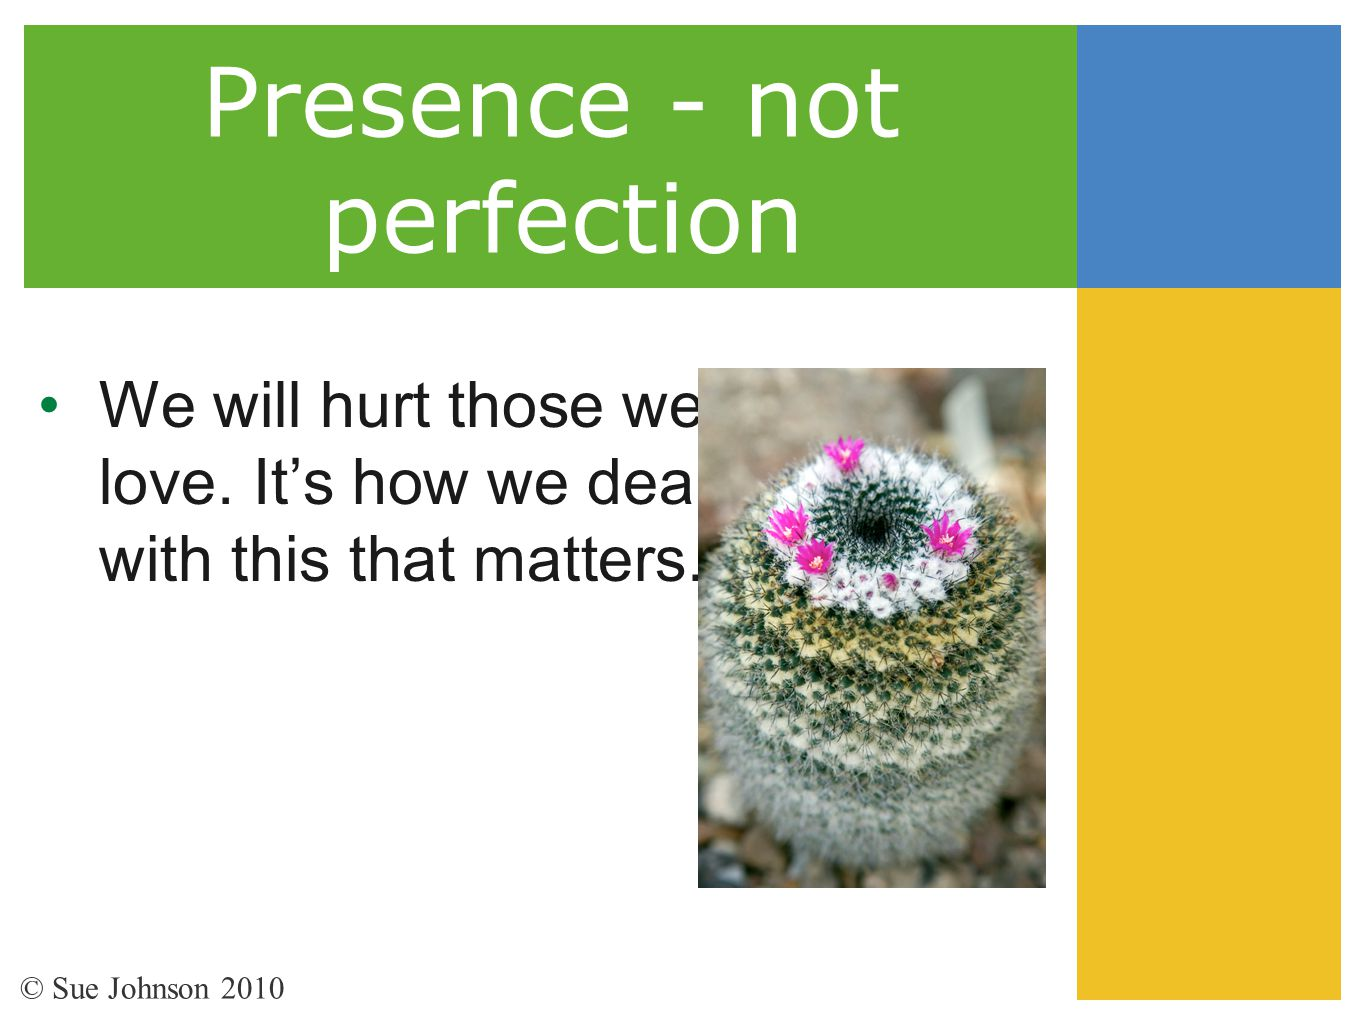 Presence - not perfection